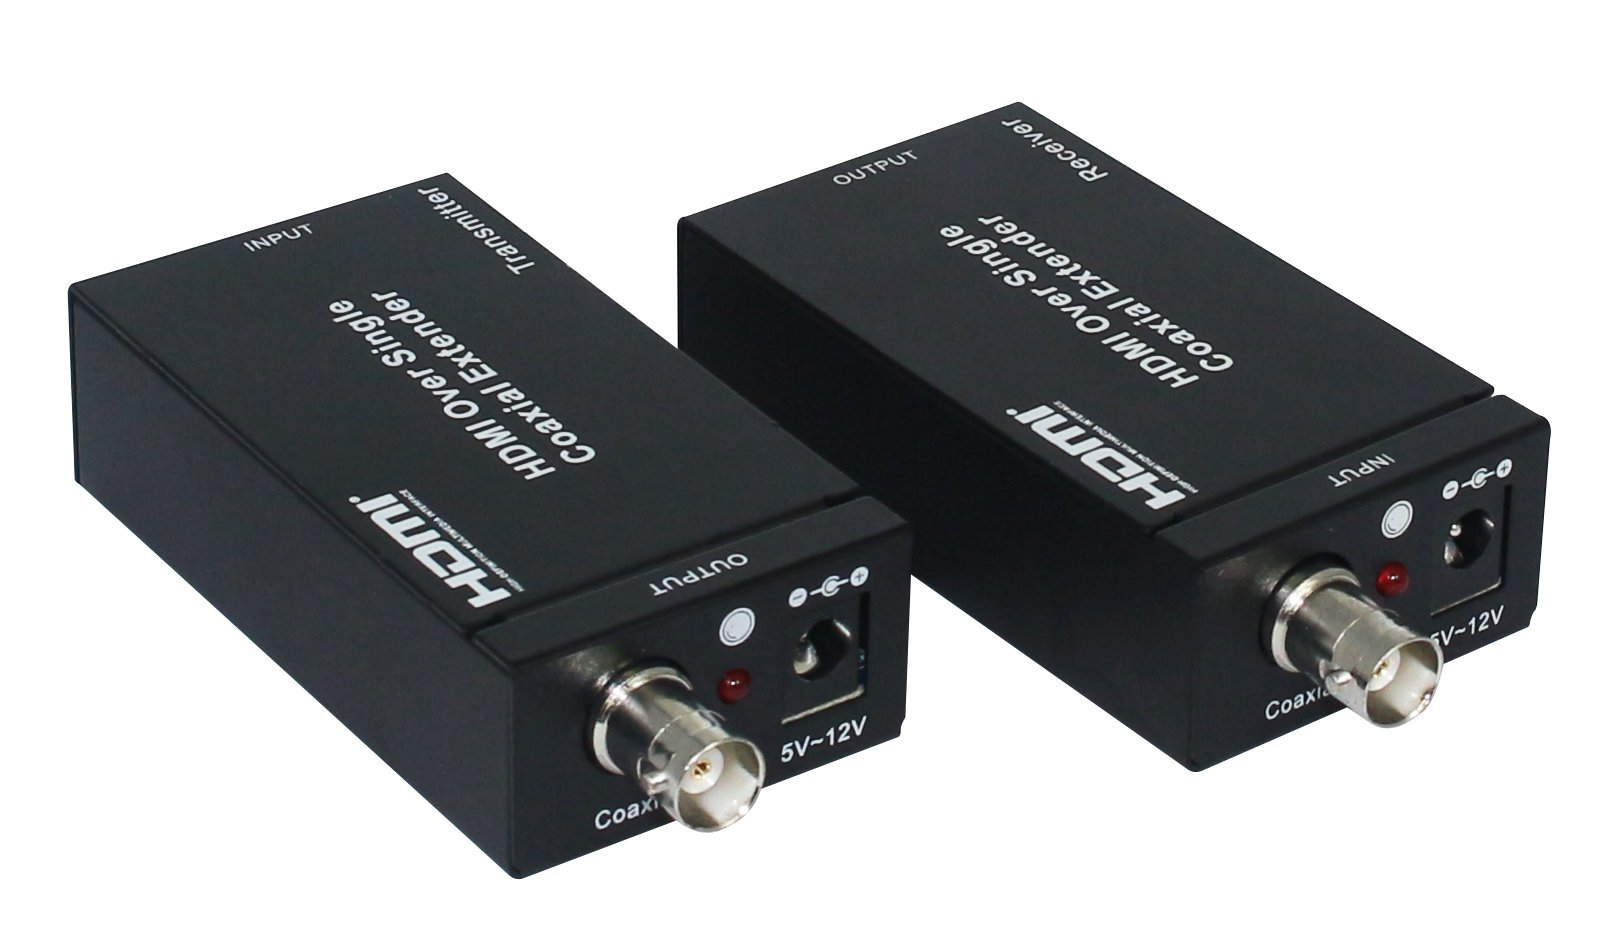 Eazy2hD HDMI Extenders Over Single RG6 Coaxial Cable up to 100m/328ft Support IR Remote Control - US Plug